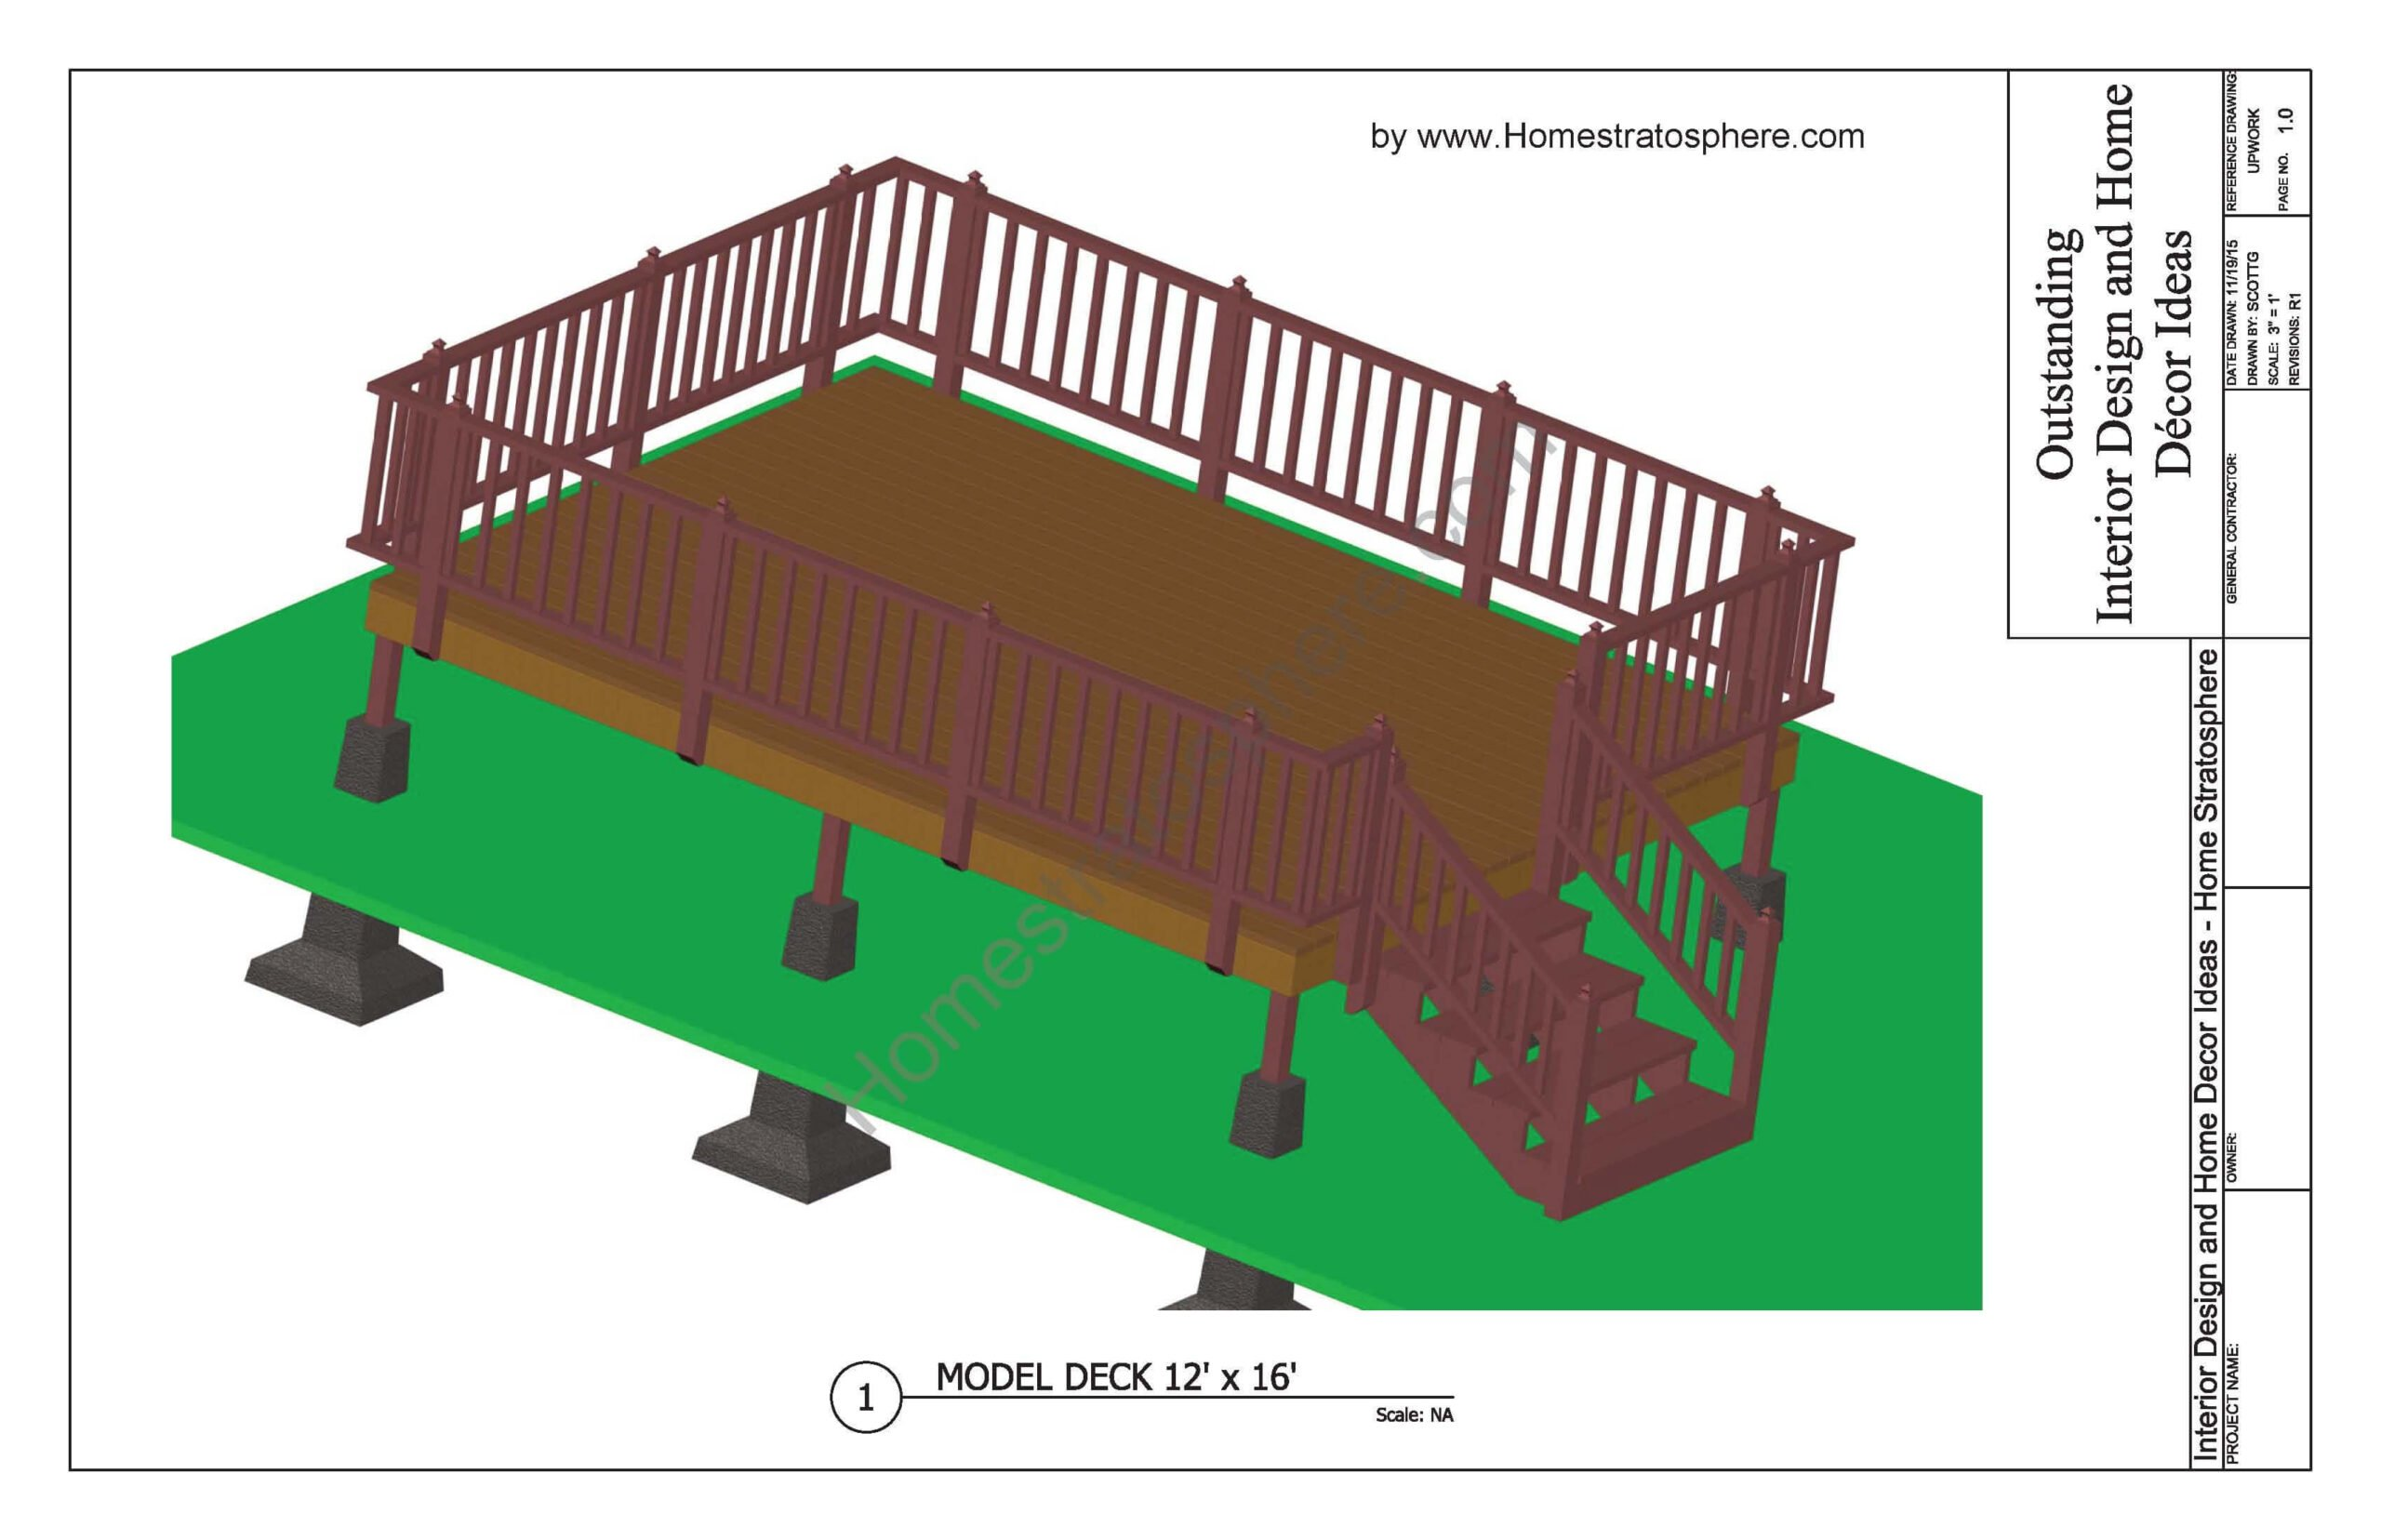 Free Deck Plans And Blueprints Online With Pdf Downloads Home Stratosphere